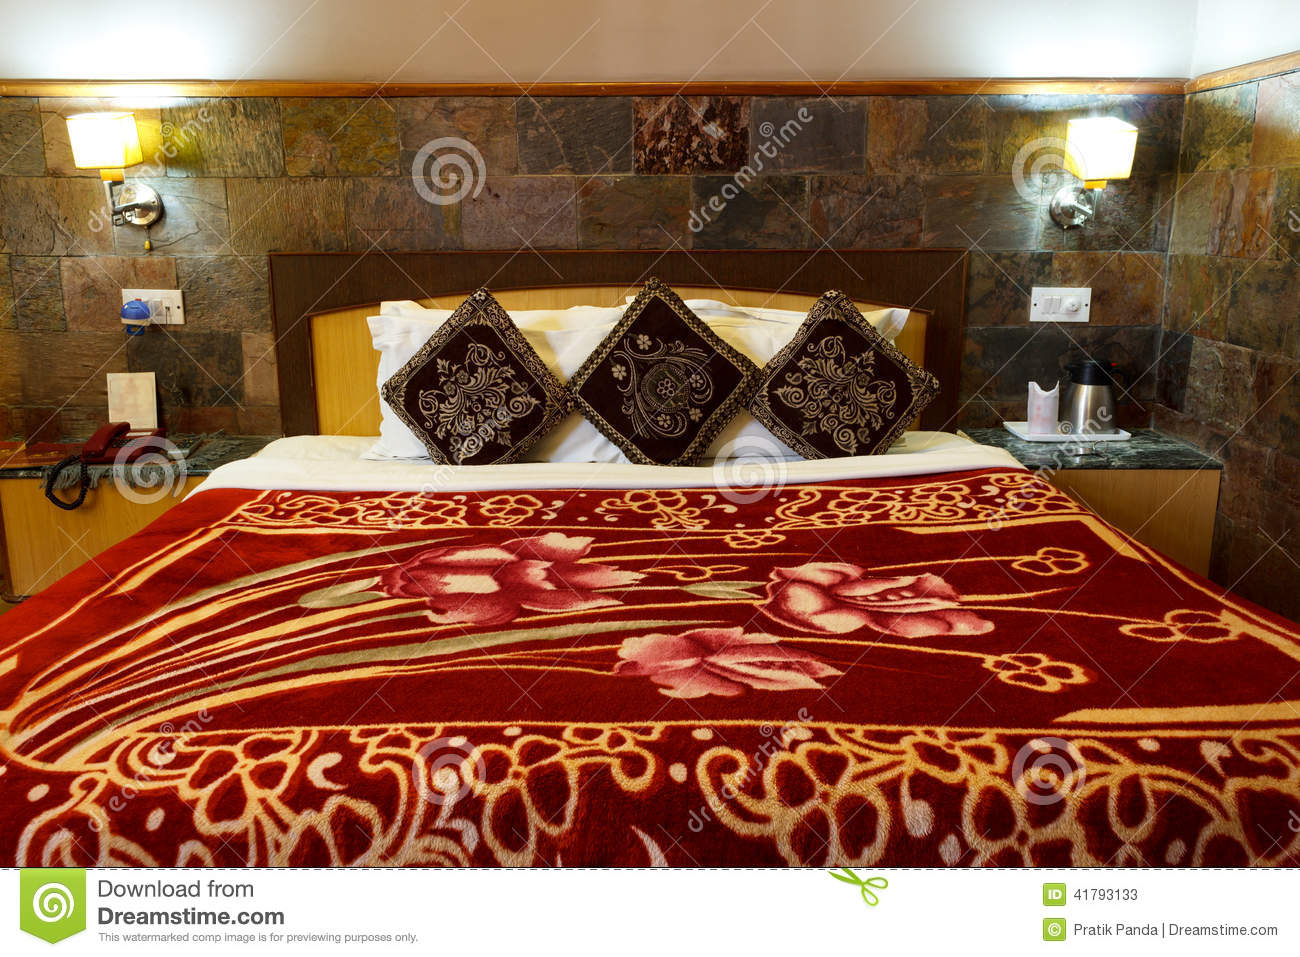 Bed in bedroom home interior design stock photo image for Interior design bed sheets